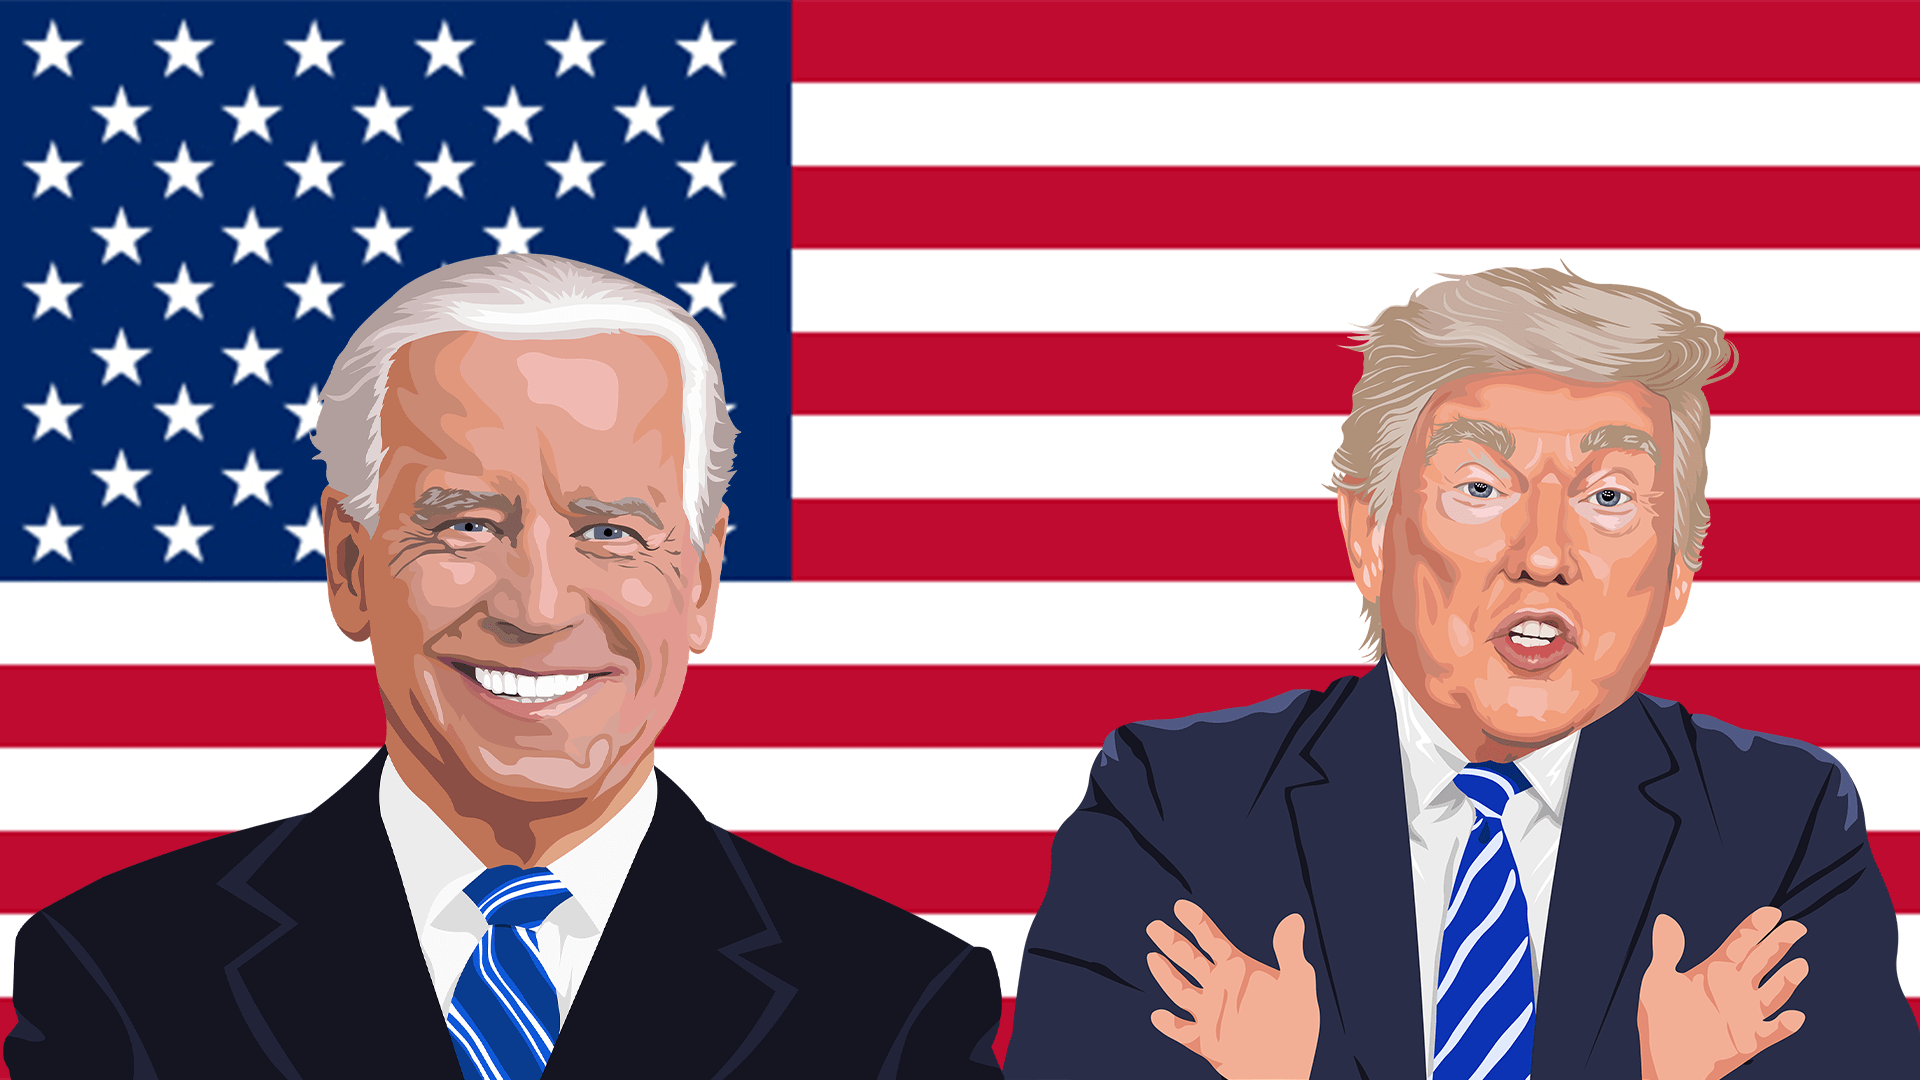 Endgame: The US Presidential Election